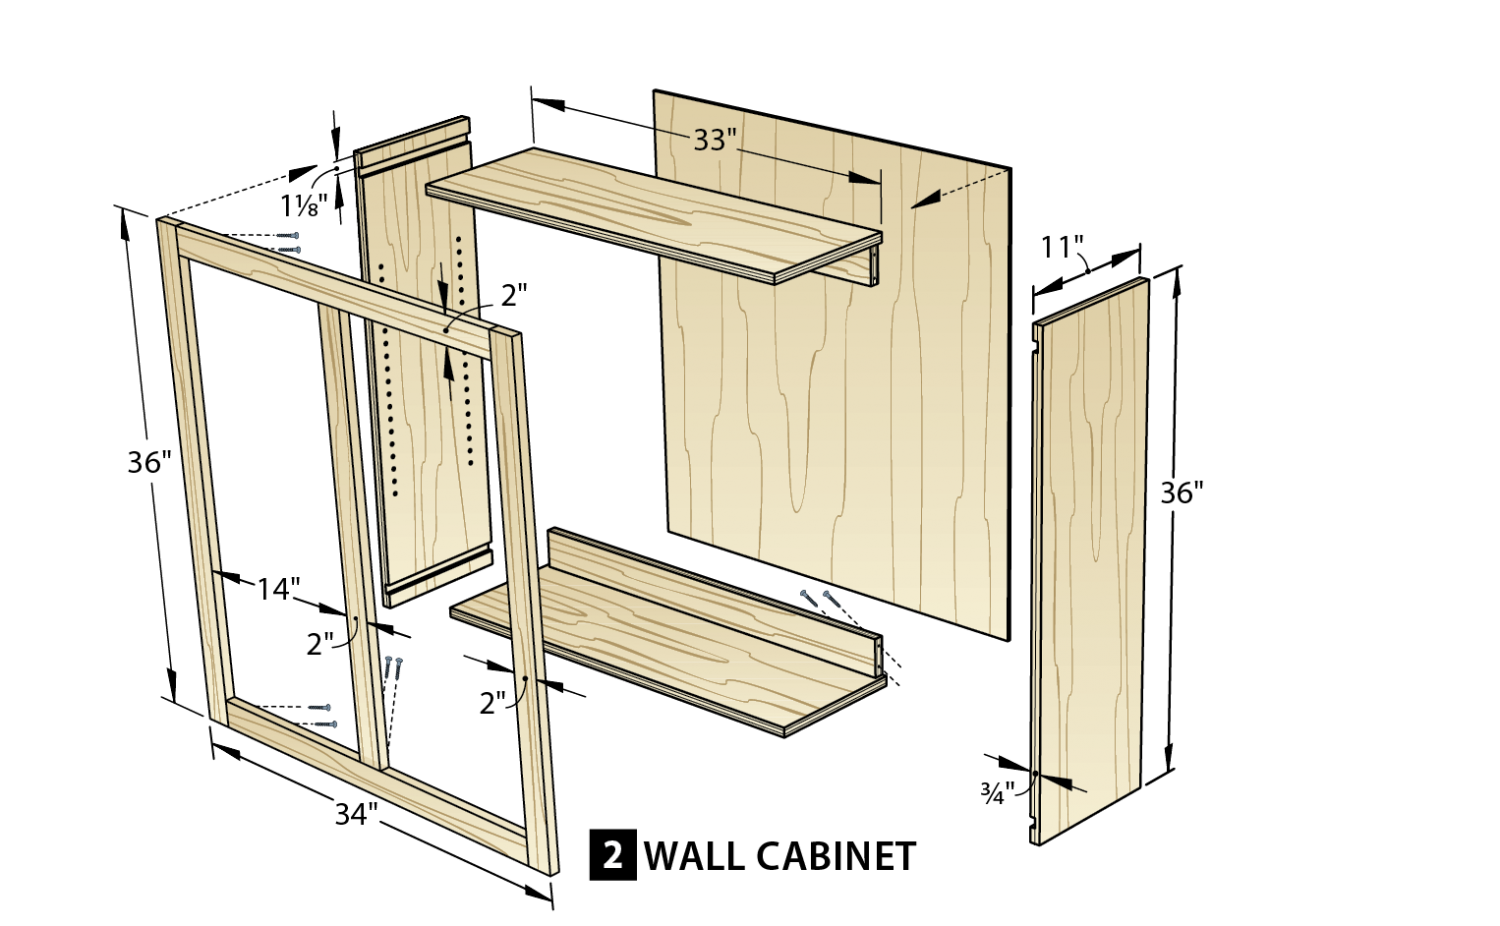 15 Vanity Drawing Woodworking Shop For Free Download On Ya Webdesign